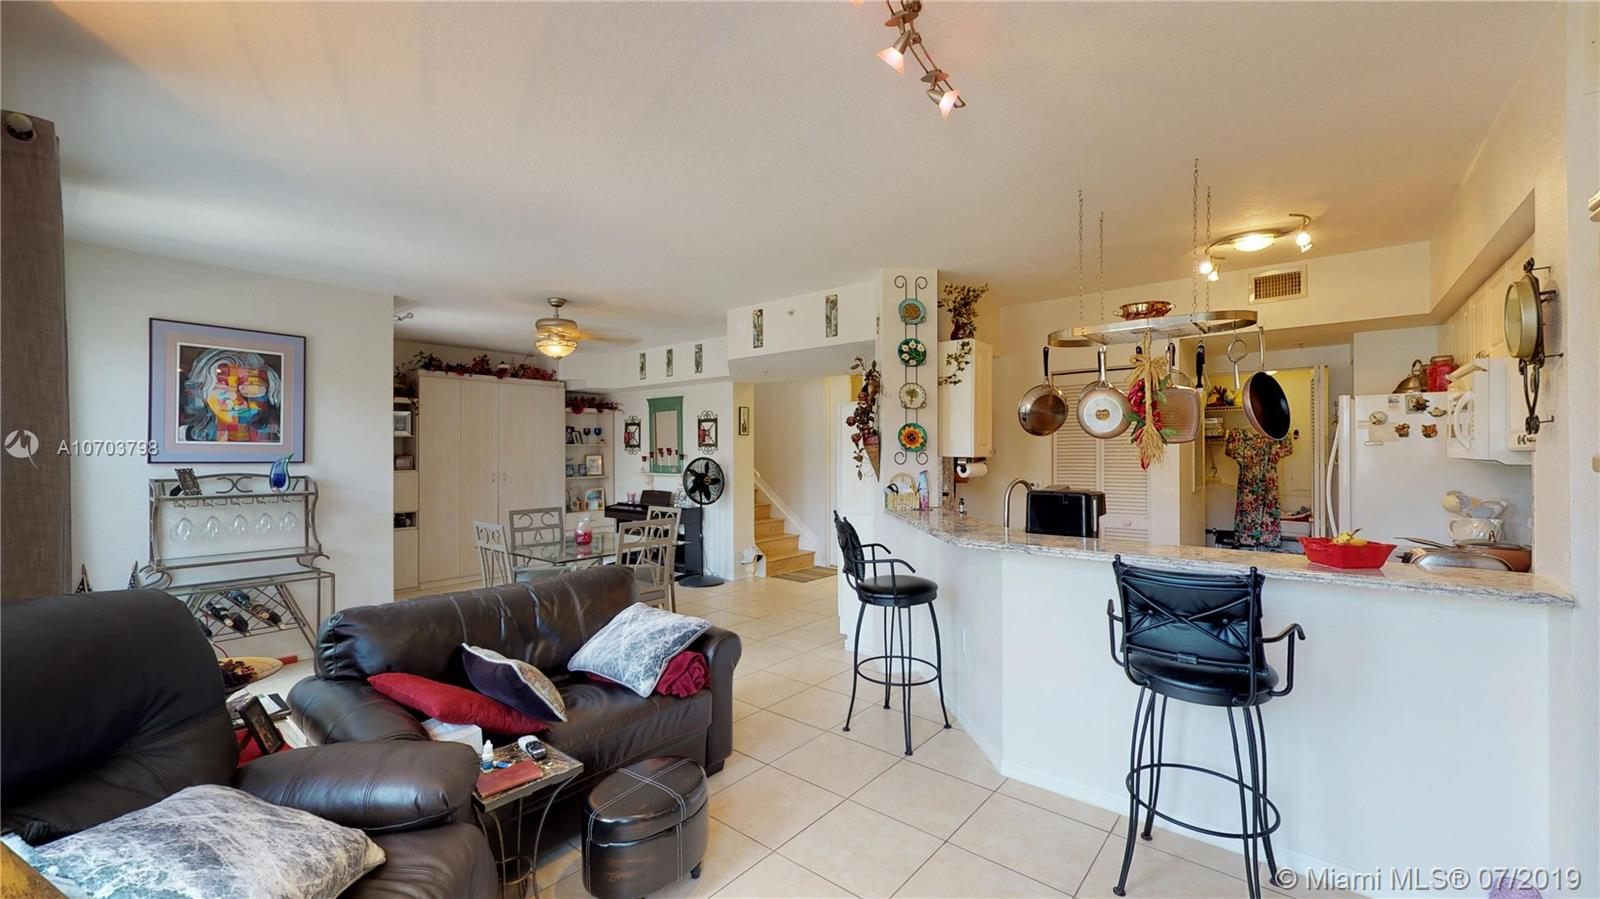 Listing A10703798 - Large Photo # 33